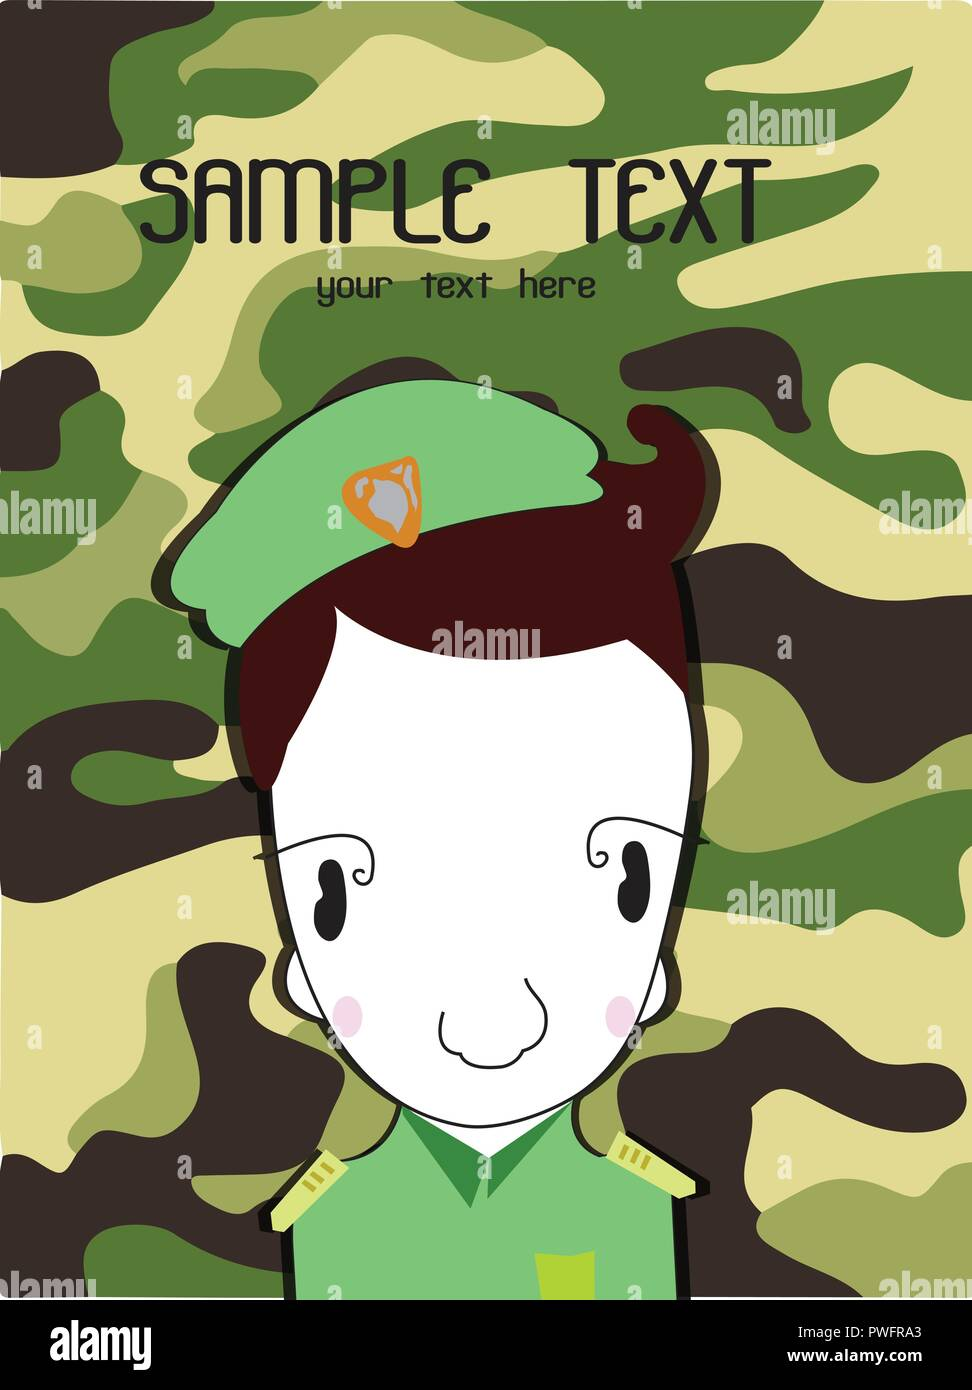 Cute cartoon illustration of a soldier background Green